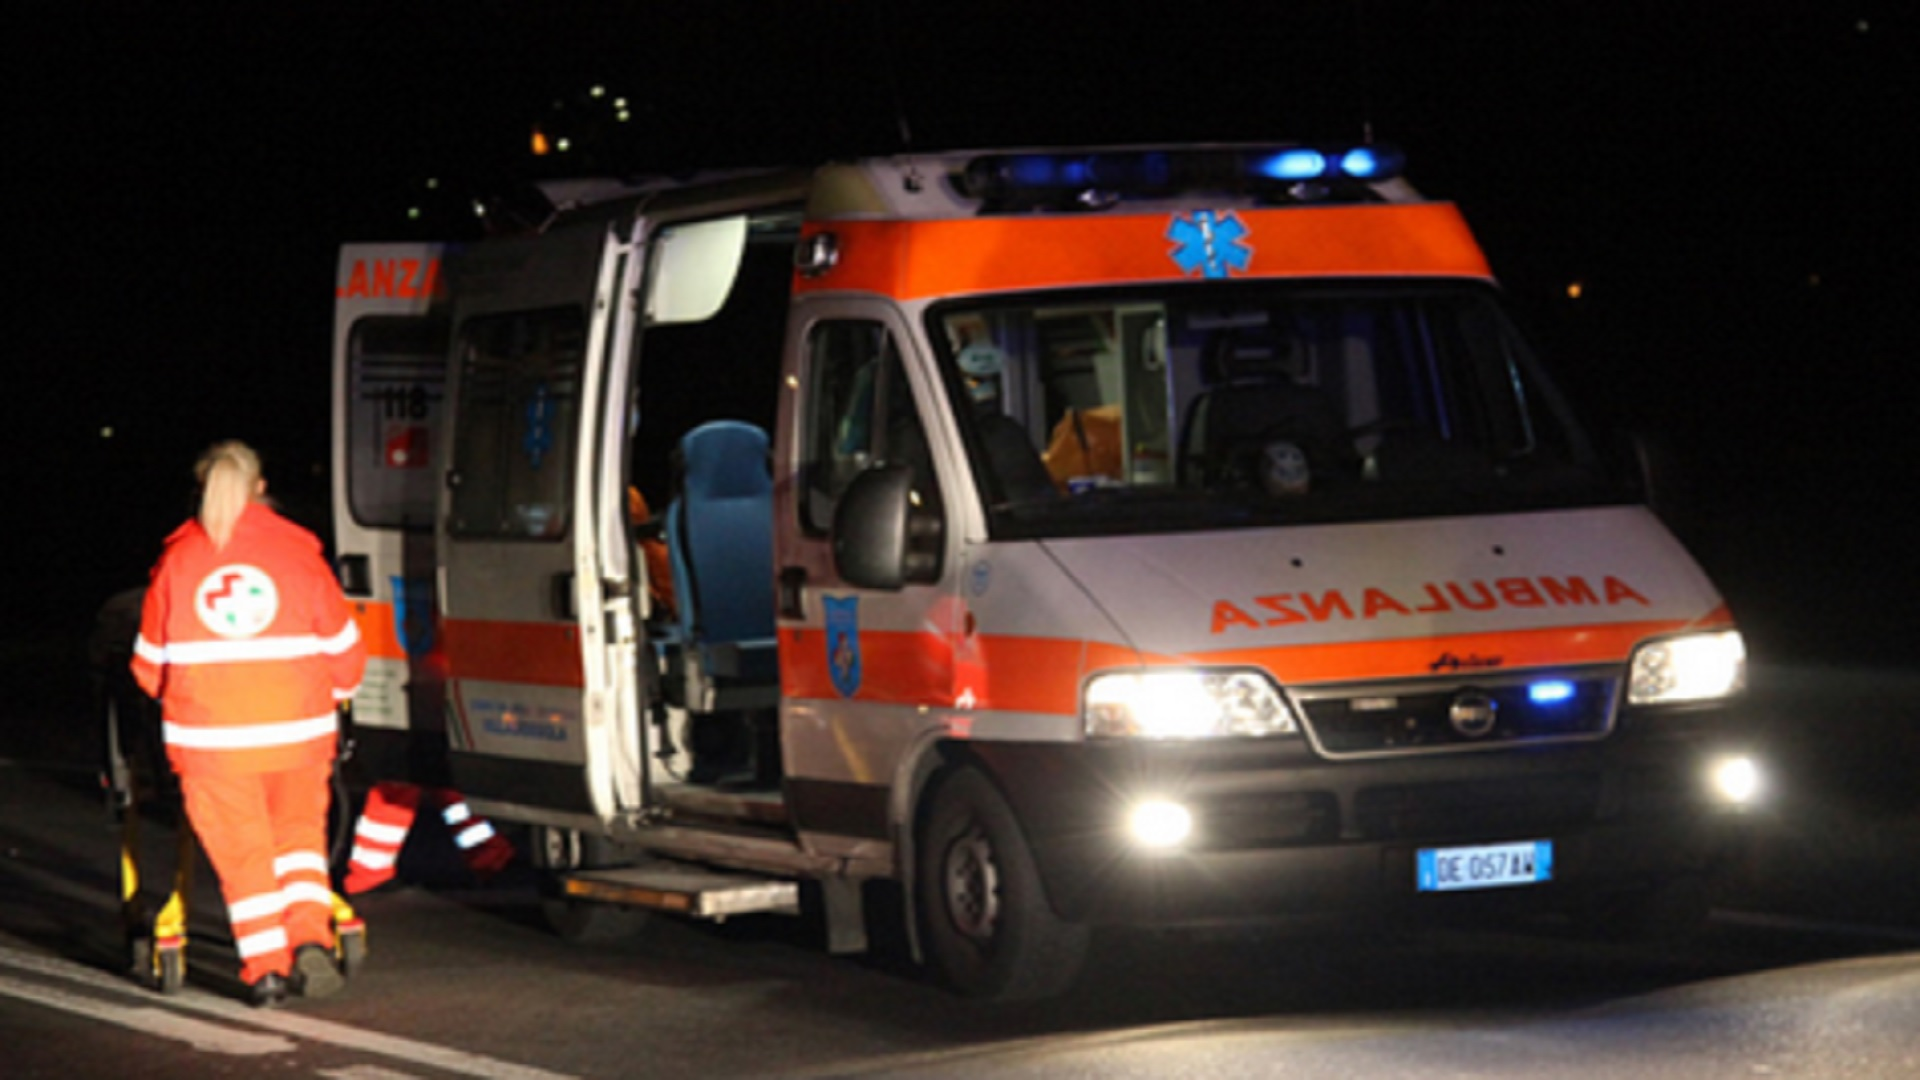 Incidente stradale mortale: muore una 73enne